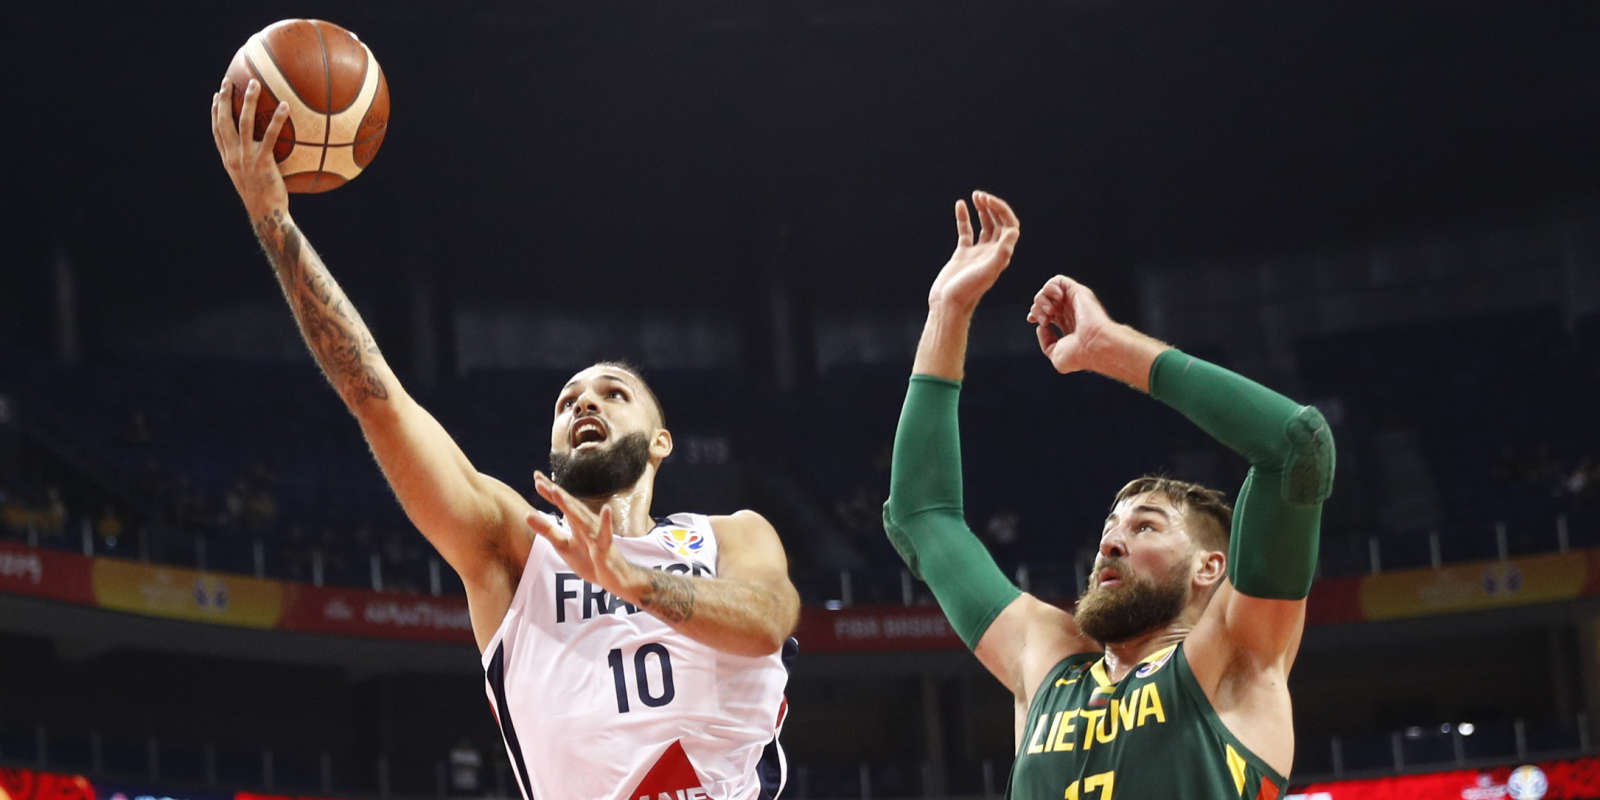 Basketball - FIBA World Cup - Second Round - Group L - France v Lithuania - Gymnasium of Youth Olympic Games Sport Park, Nanjing, China - September 7, 2019 France's Evan Fournier in action with Lithuania's Jonas Valanciunas REUTERS/Edgar Su